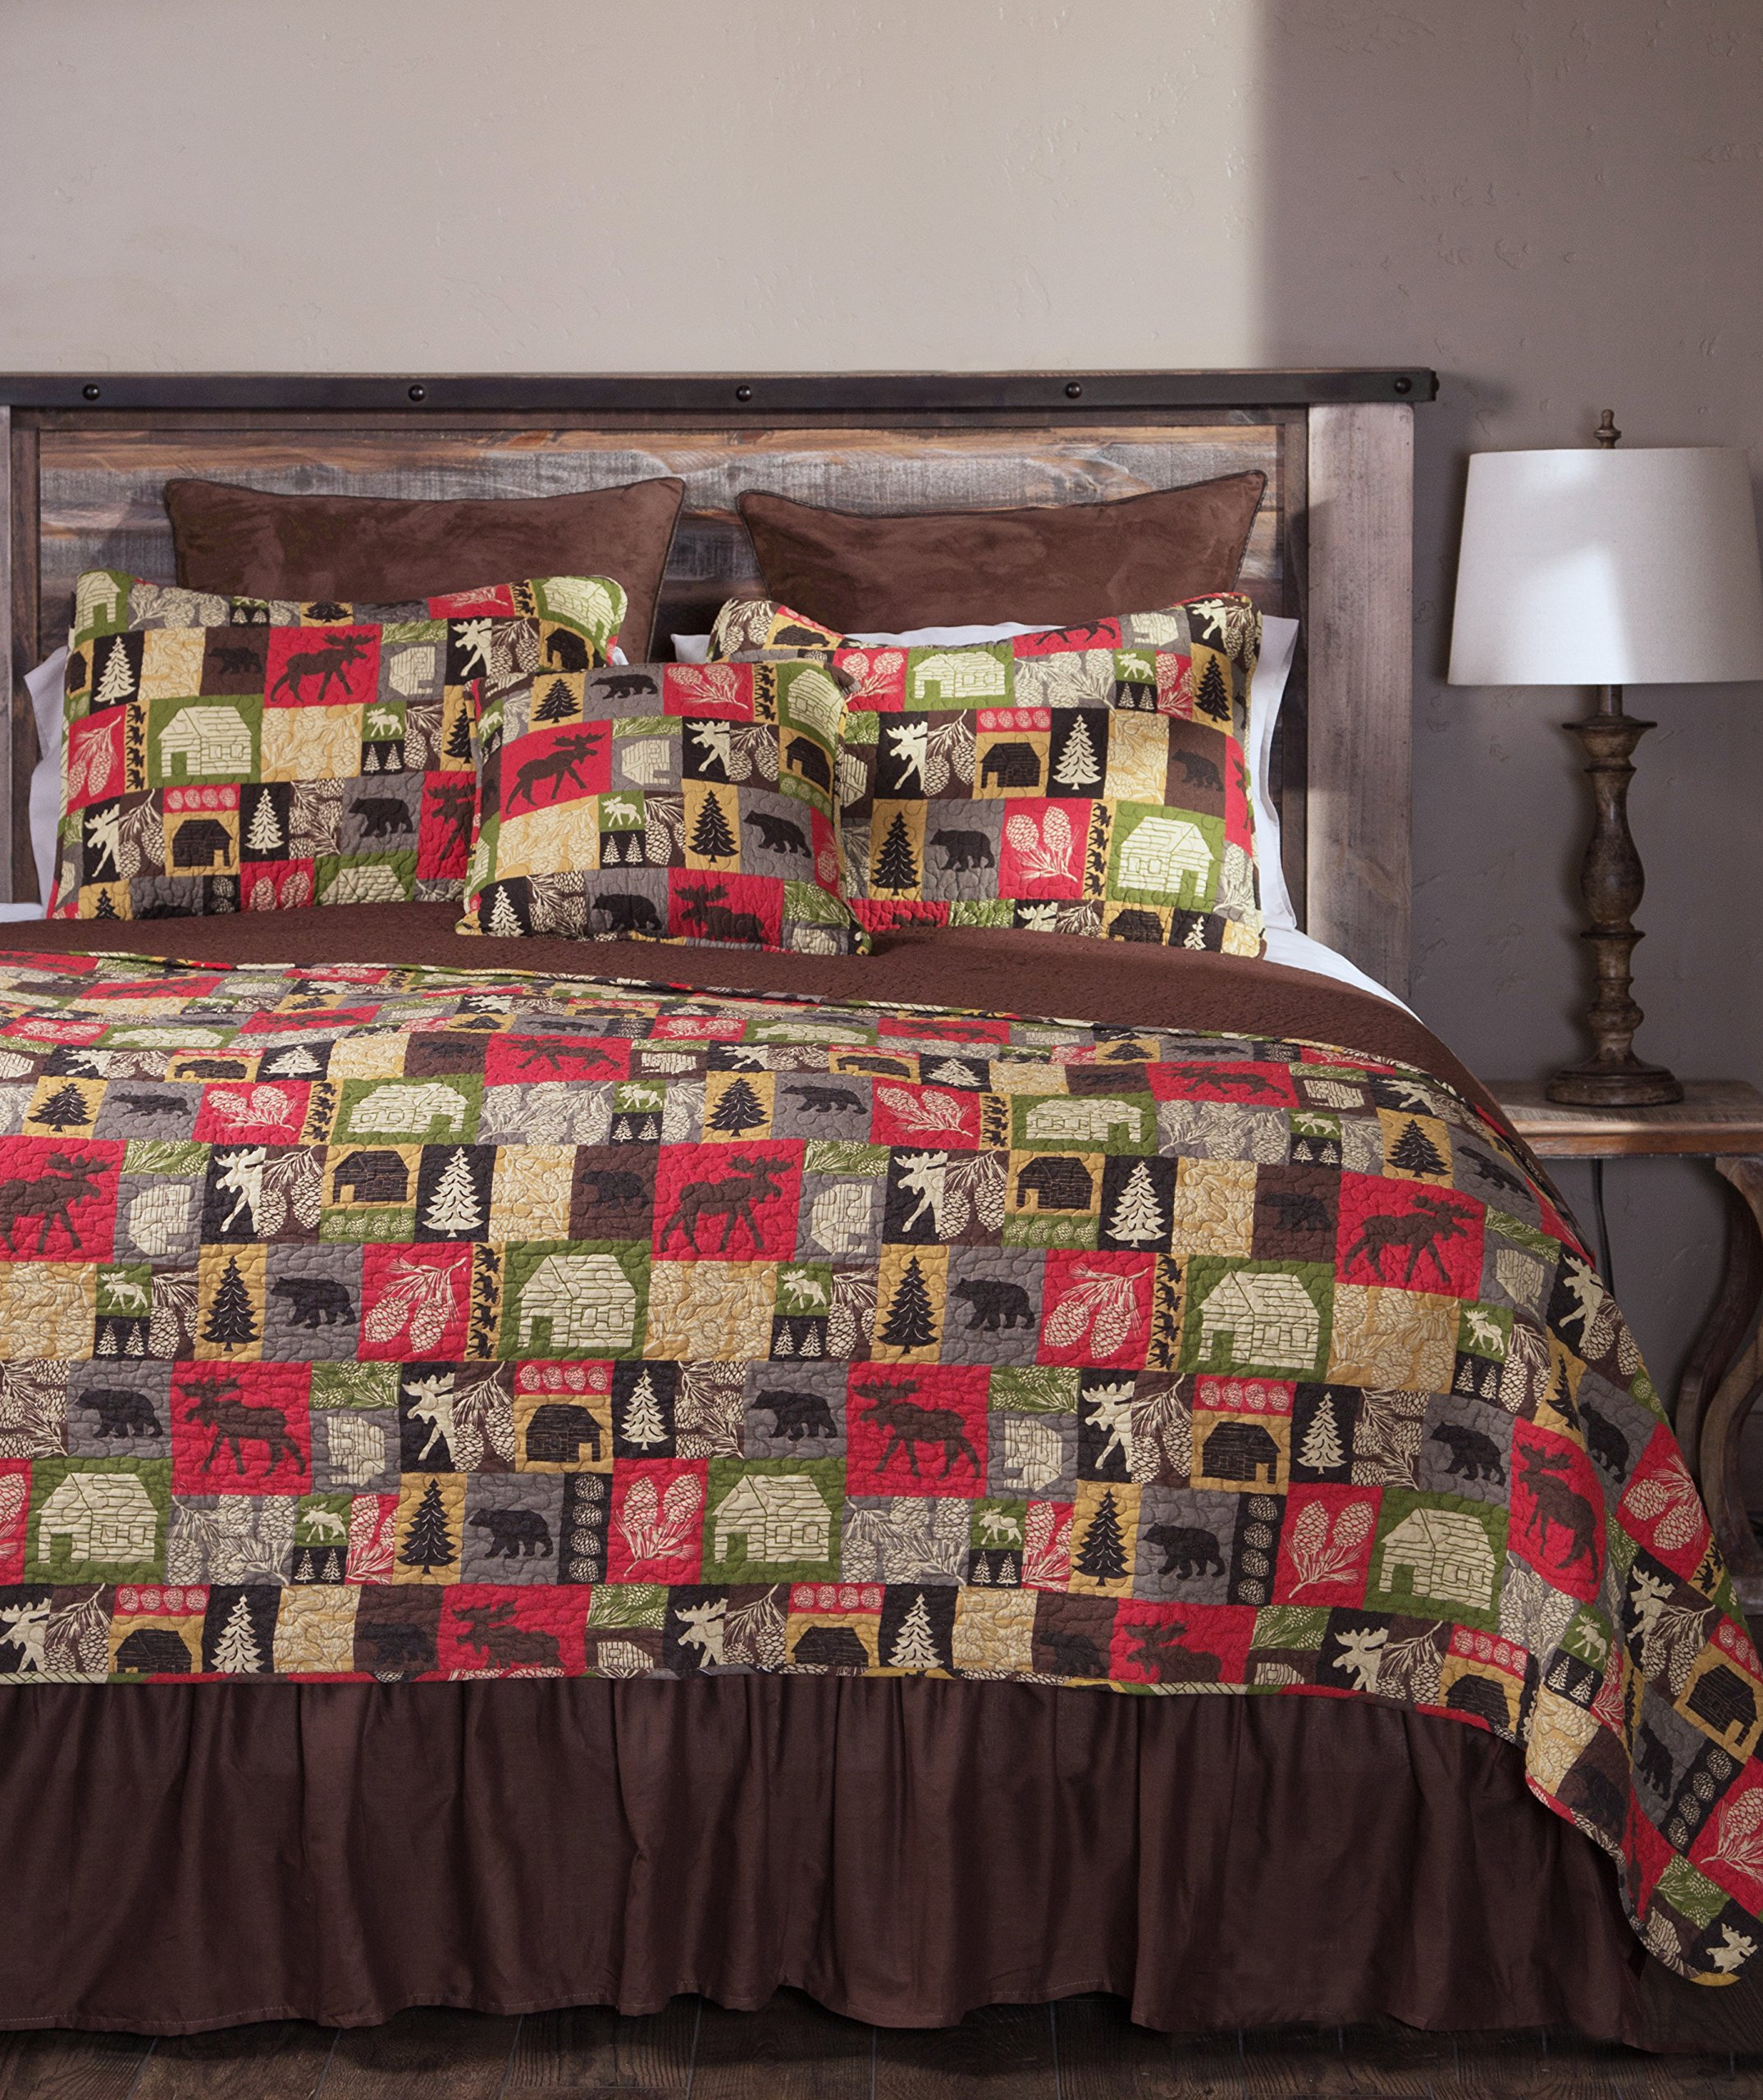 Carstens Cabin in The Woods 5 Piece Cotton Printed Quilt Bedding Set, Queen